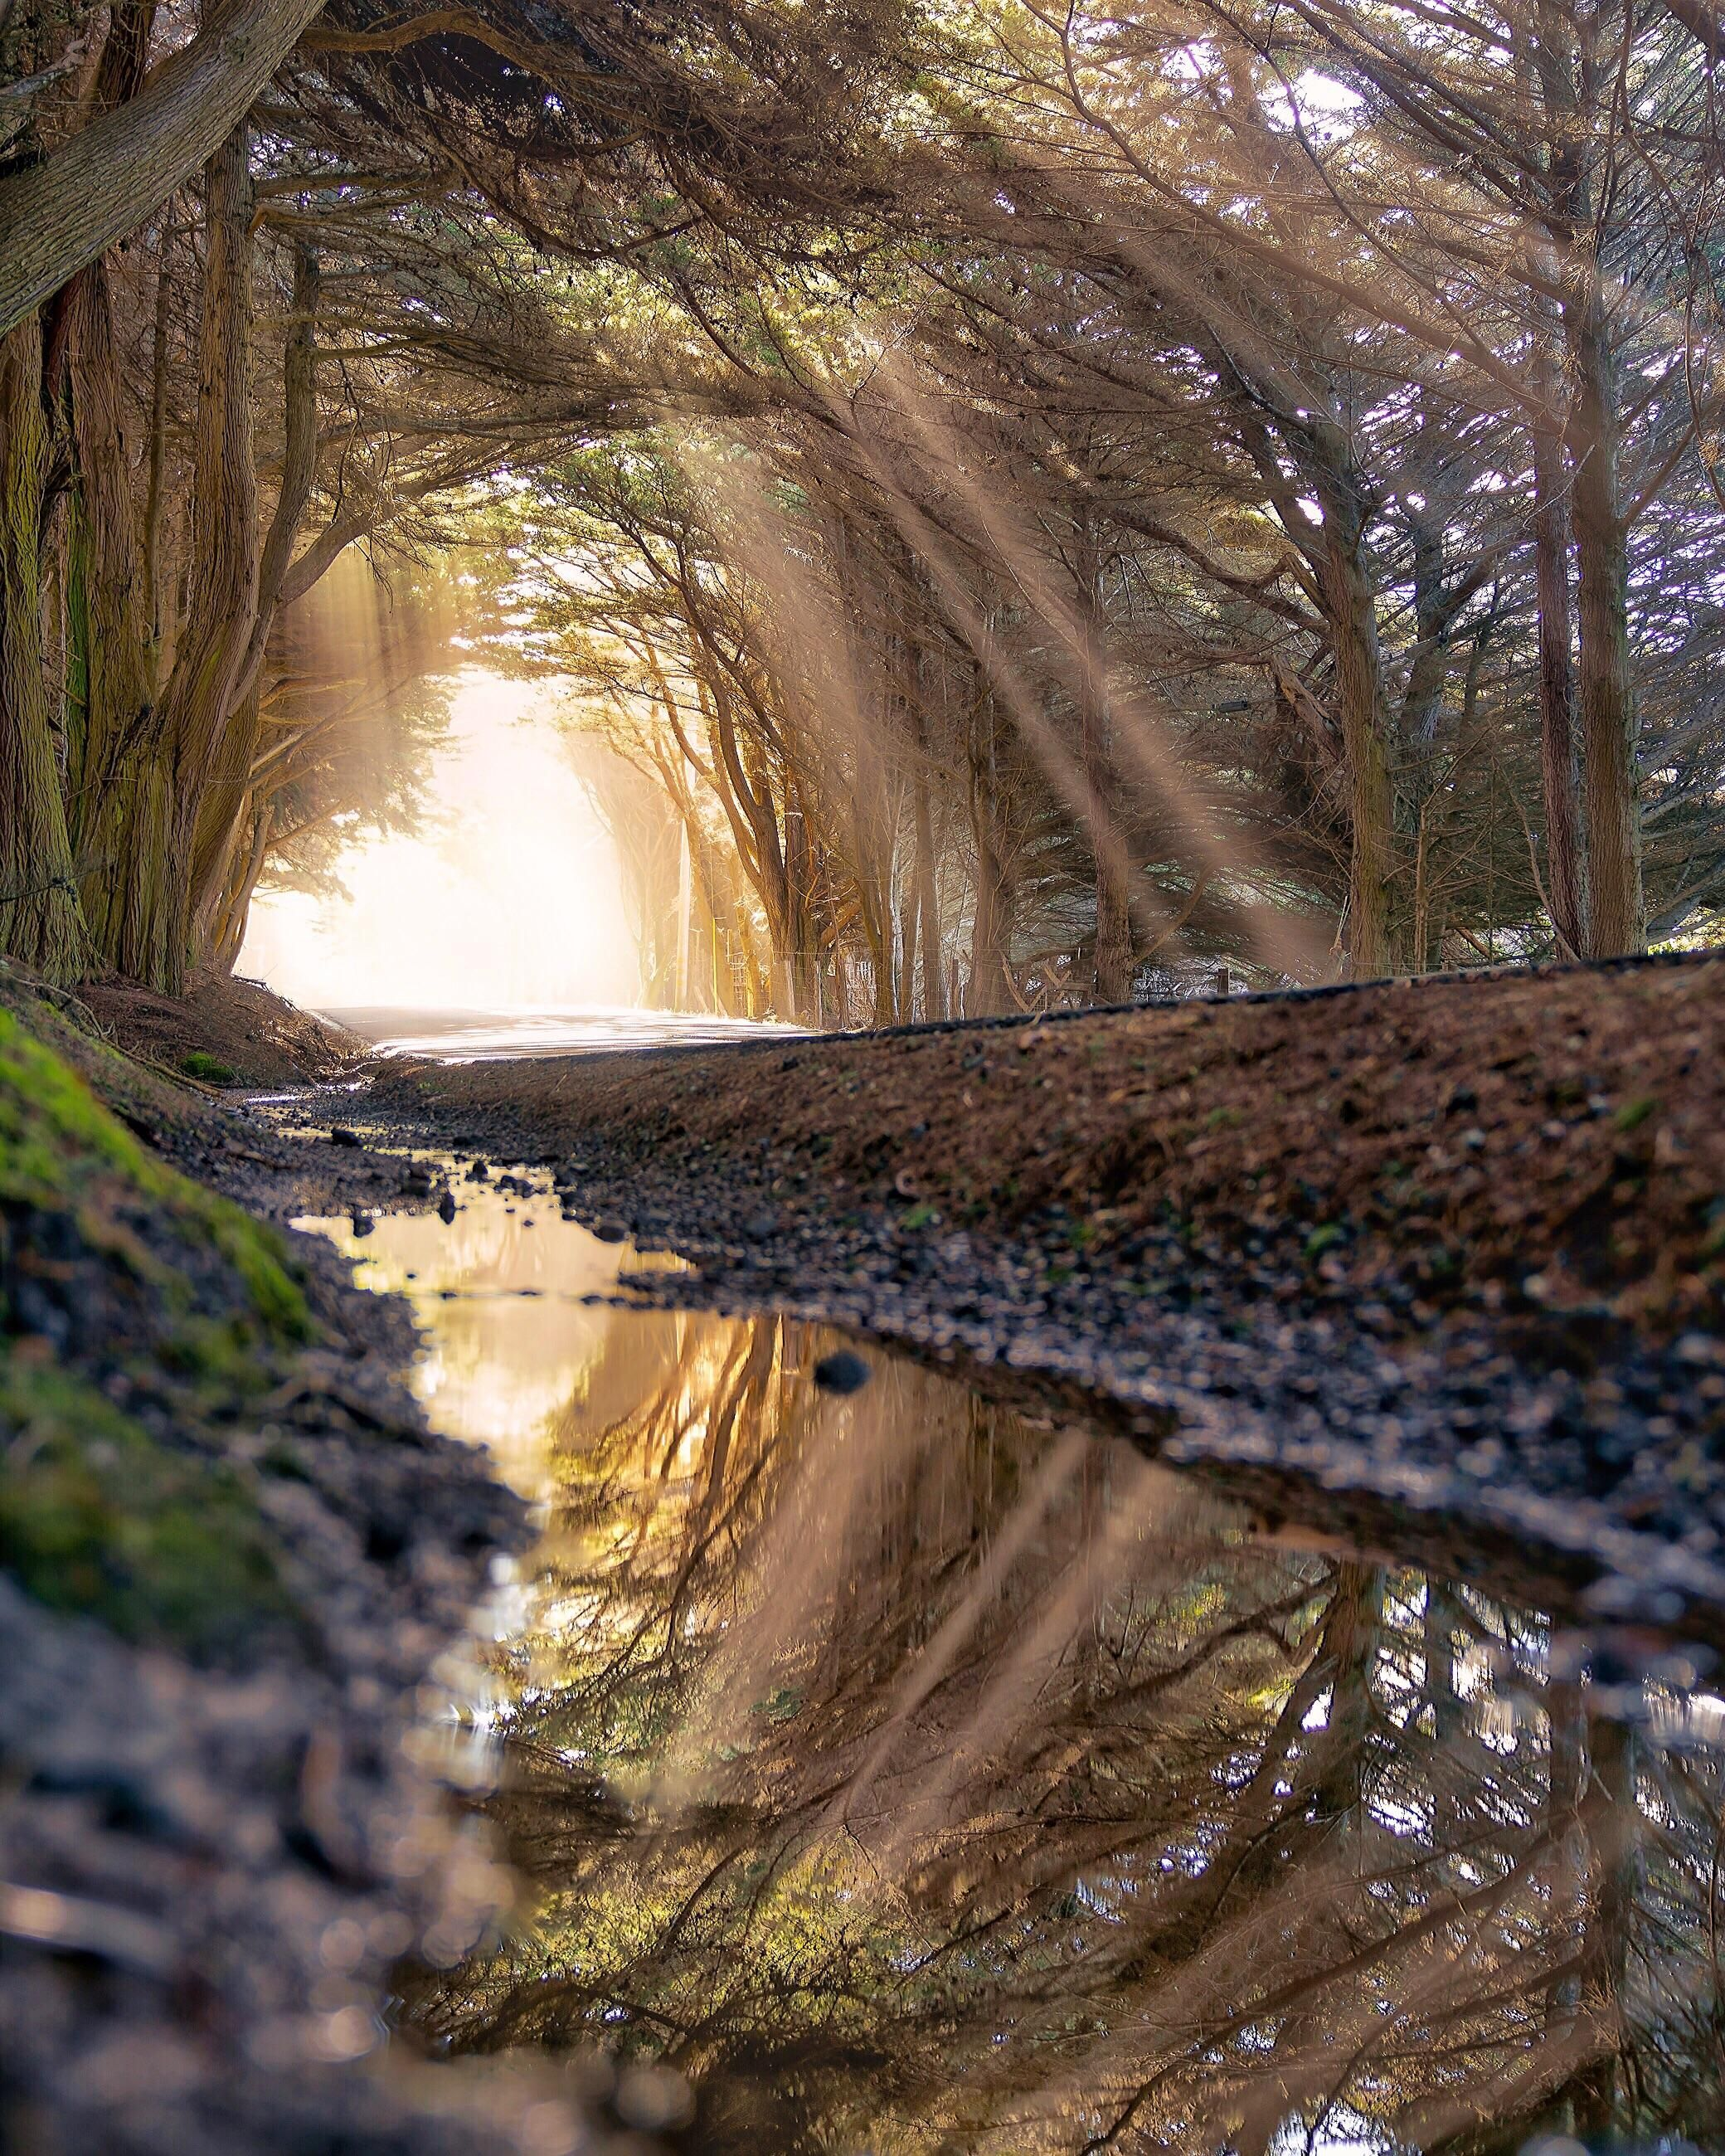 My favorite tunnel of trees north of Fort Bragg, California